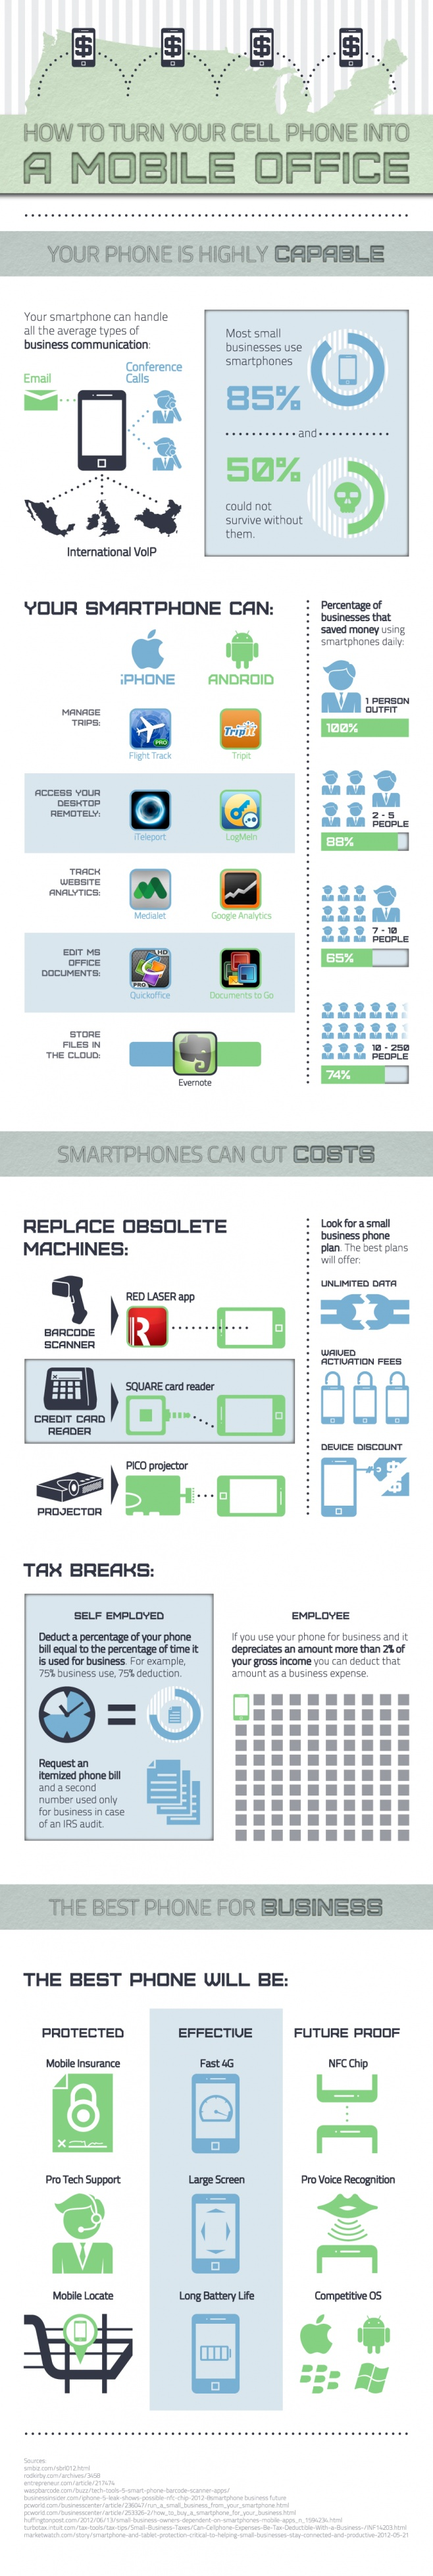 #Infographic: How to turn your #smartphone into a #mobile office